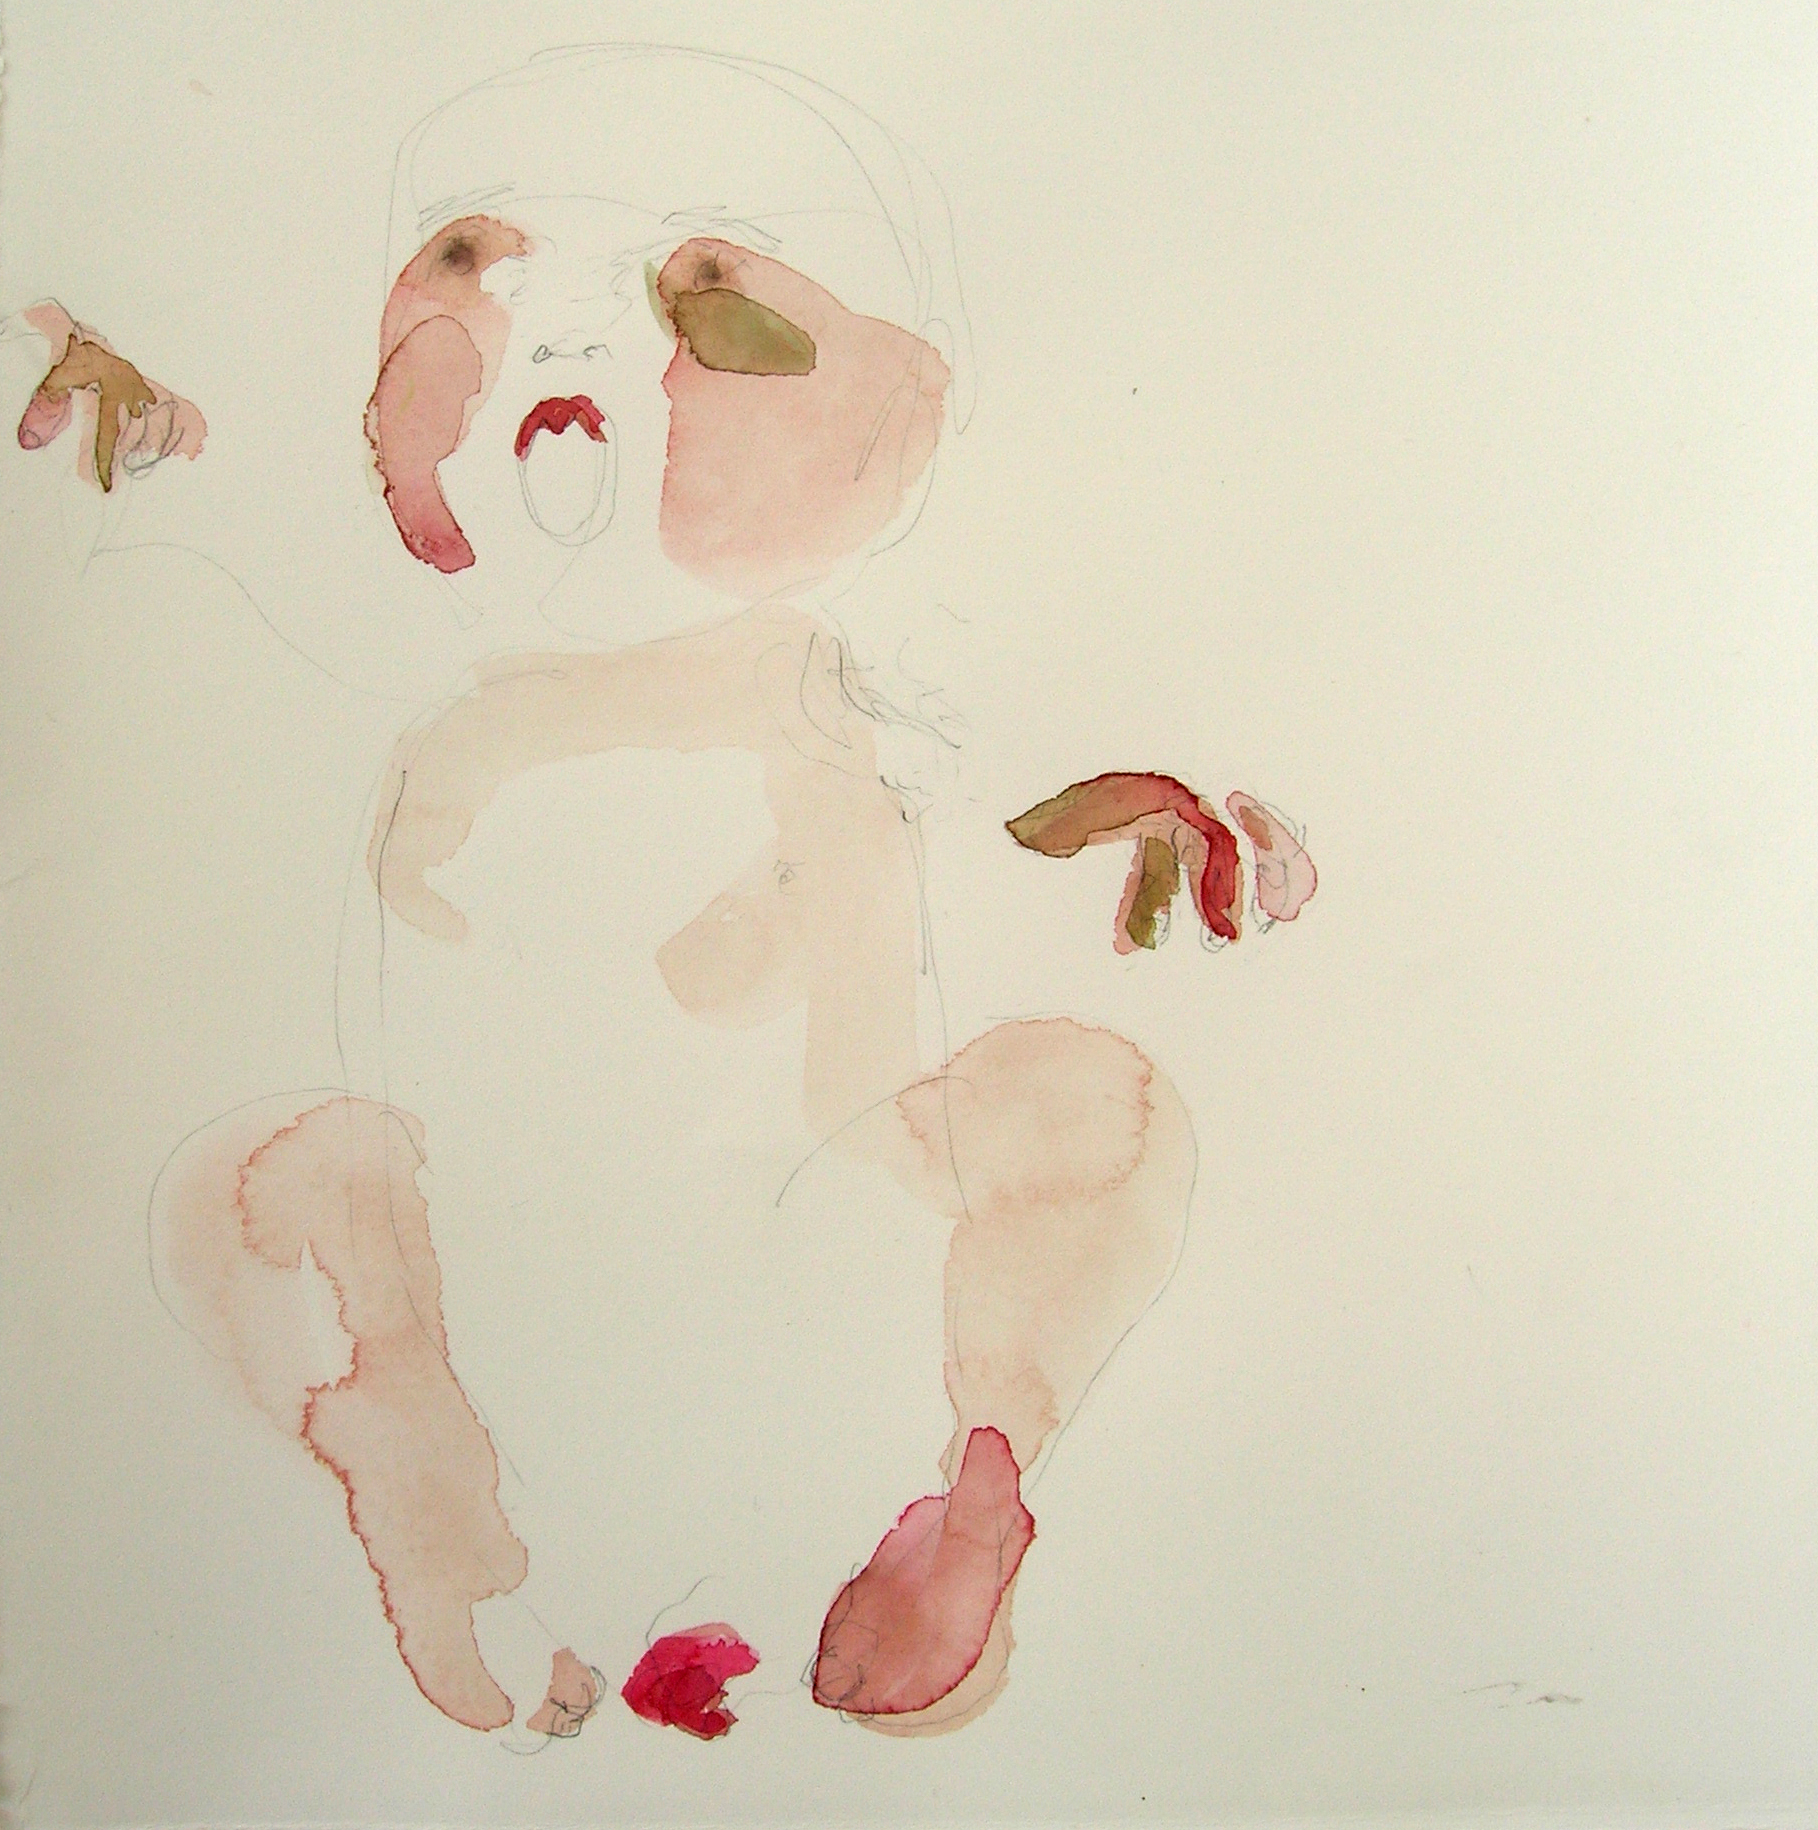 Sentar 29, 2007, Graphite and watercolor on paper, 13 X 12 in.